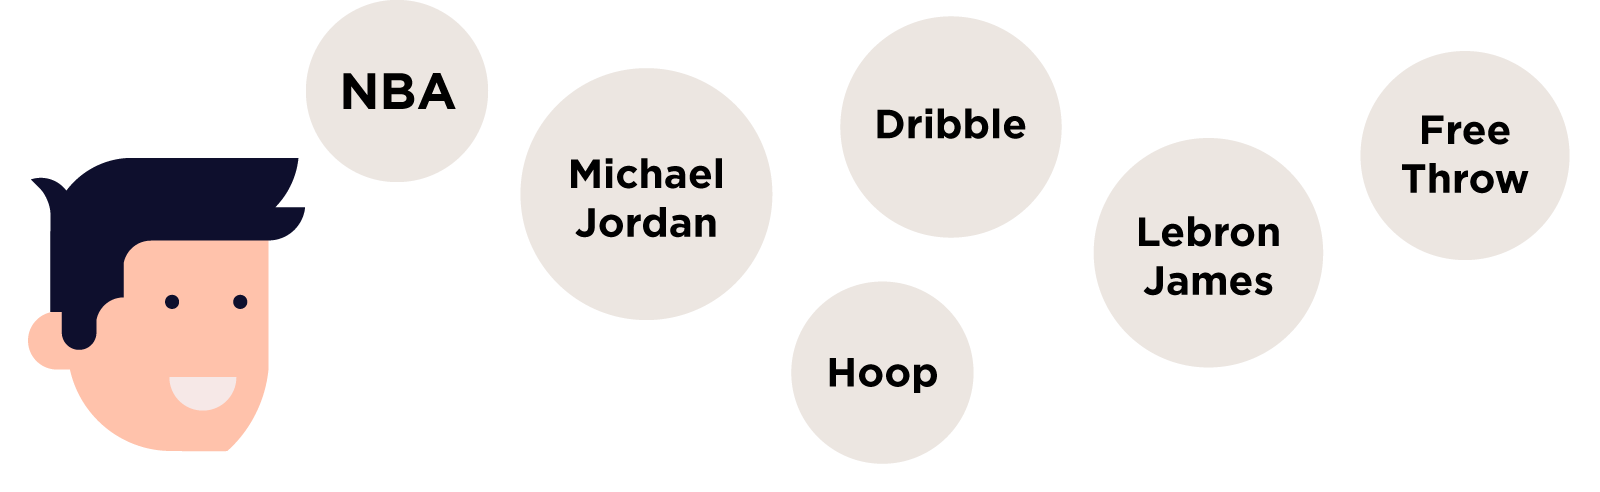 basketball word associations